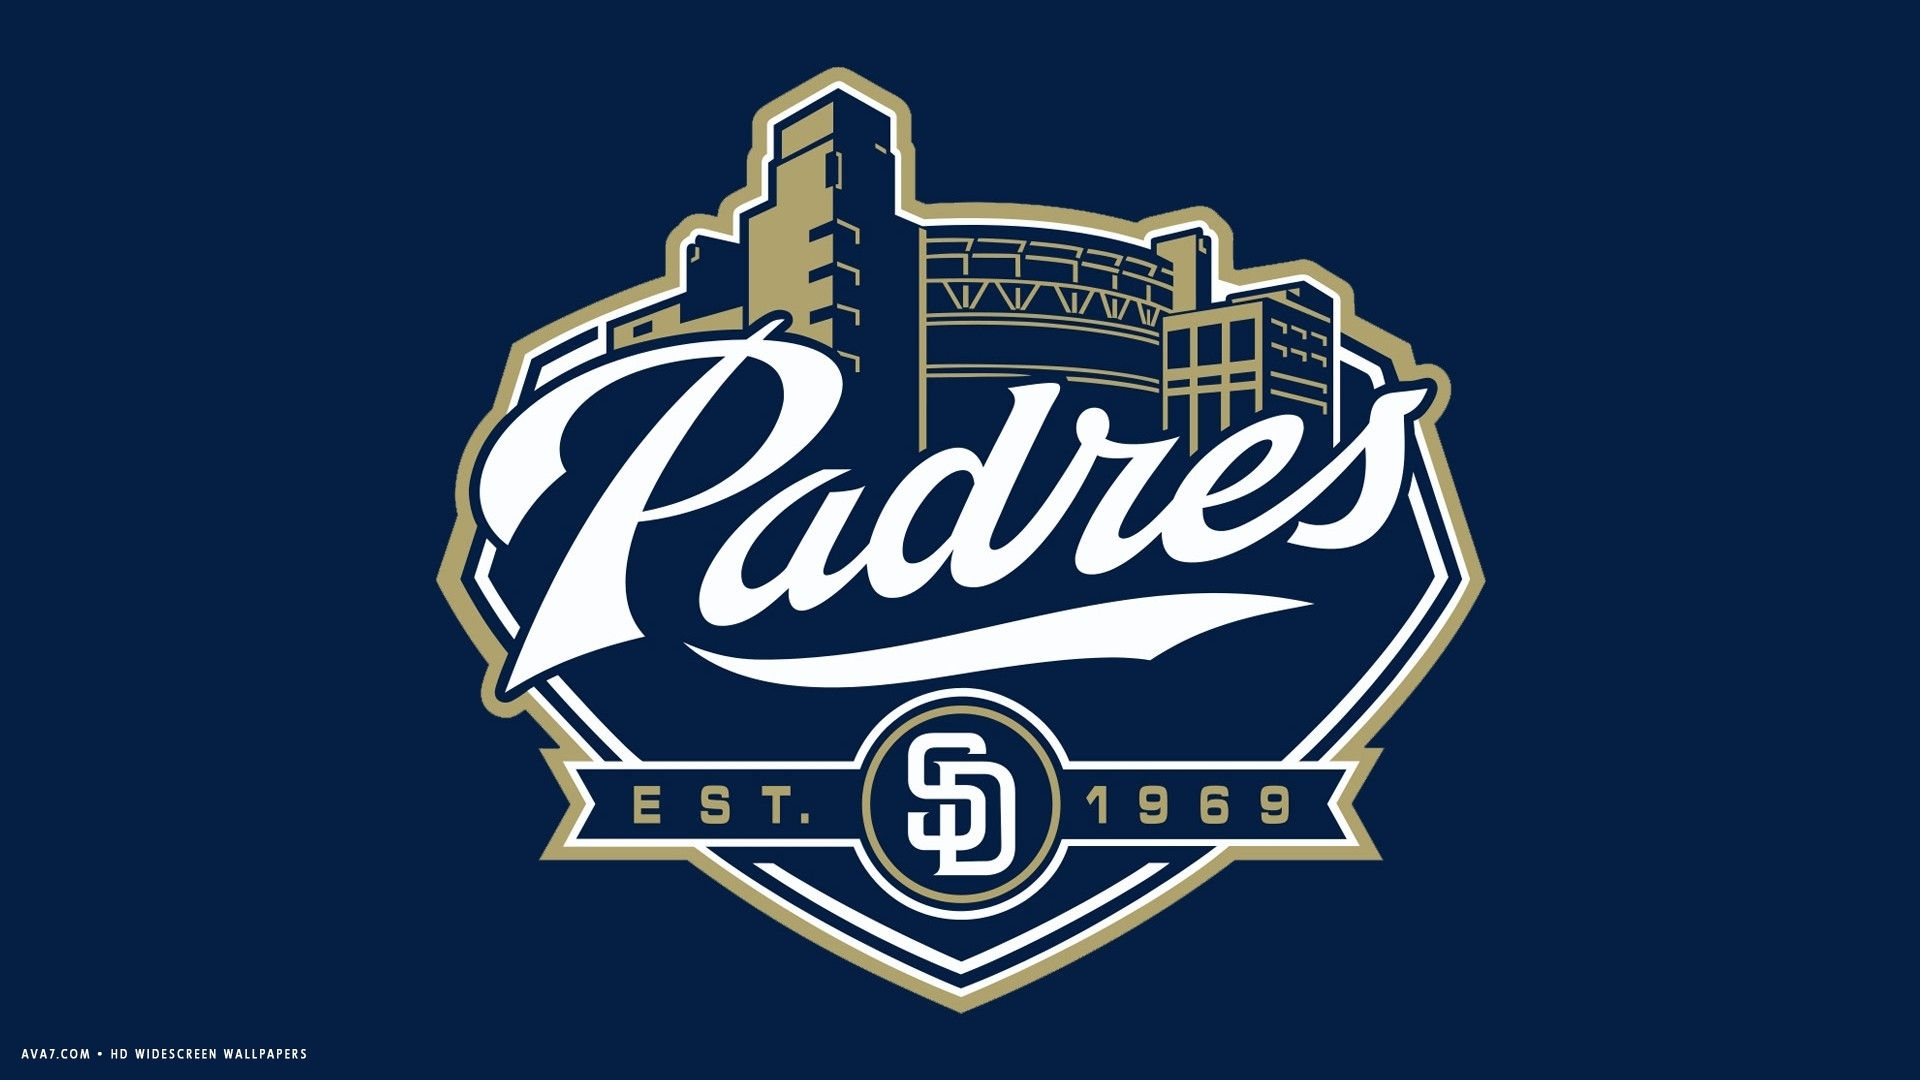 san diego padres mlb baseball team hd widescreen wallpaper